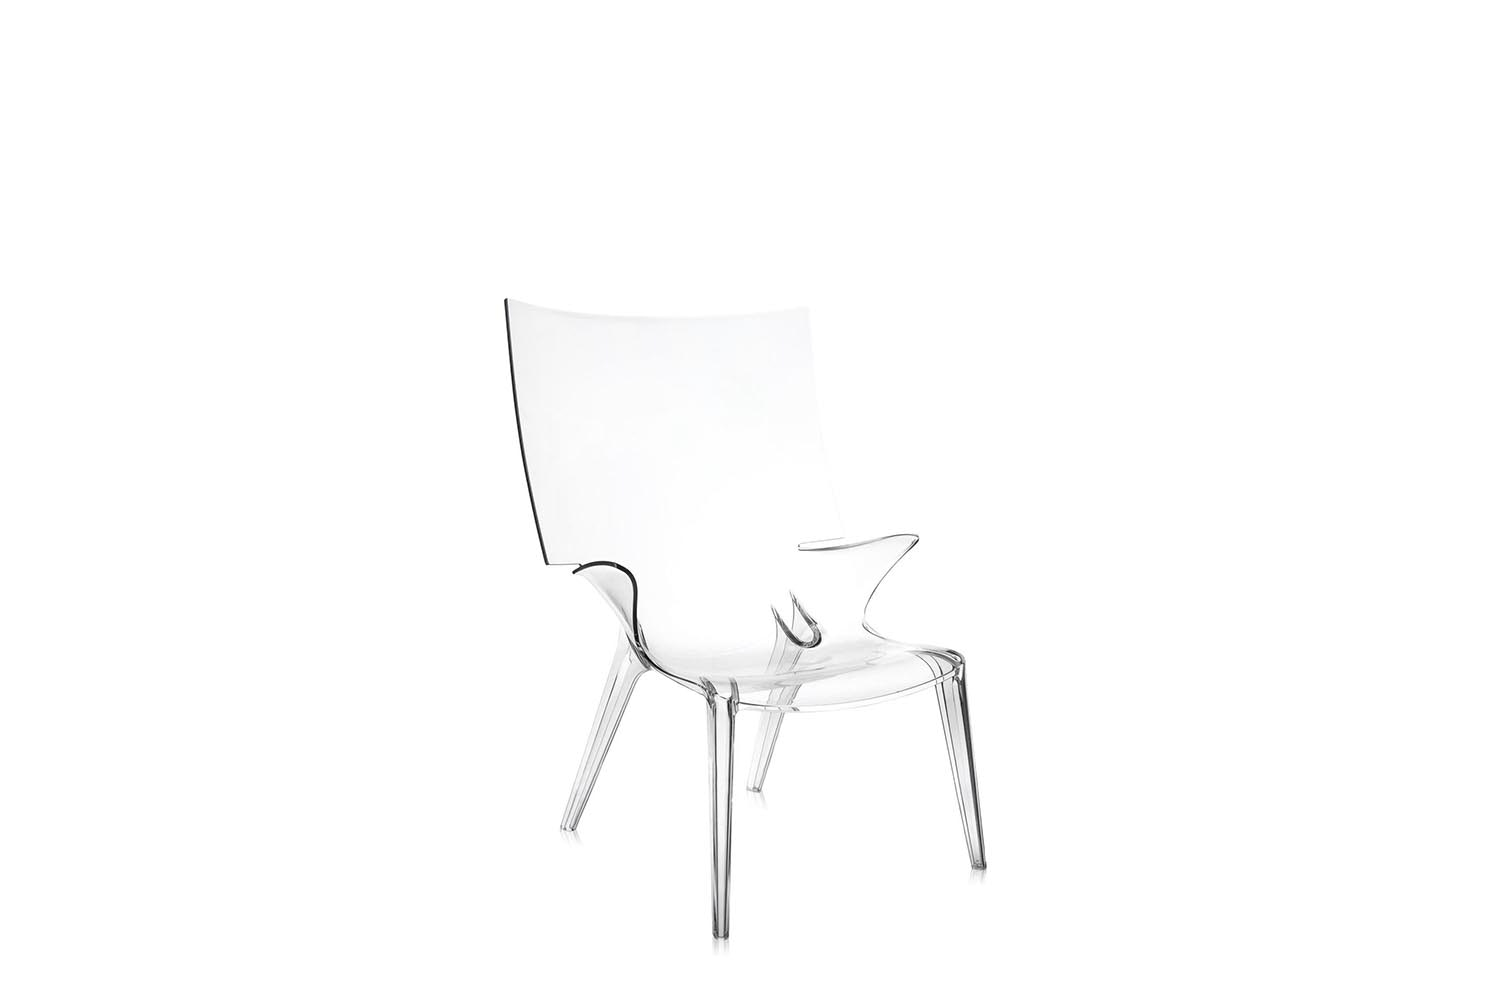 Uncle Jim Armchair by Philippe Starck for Kartell